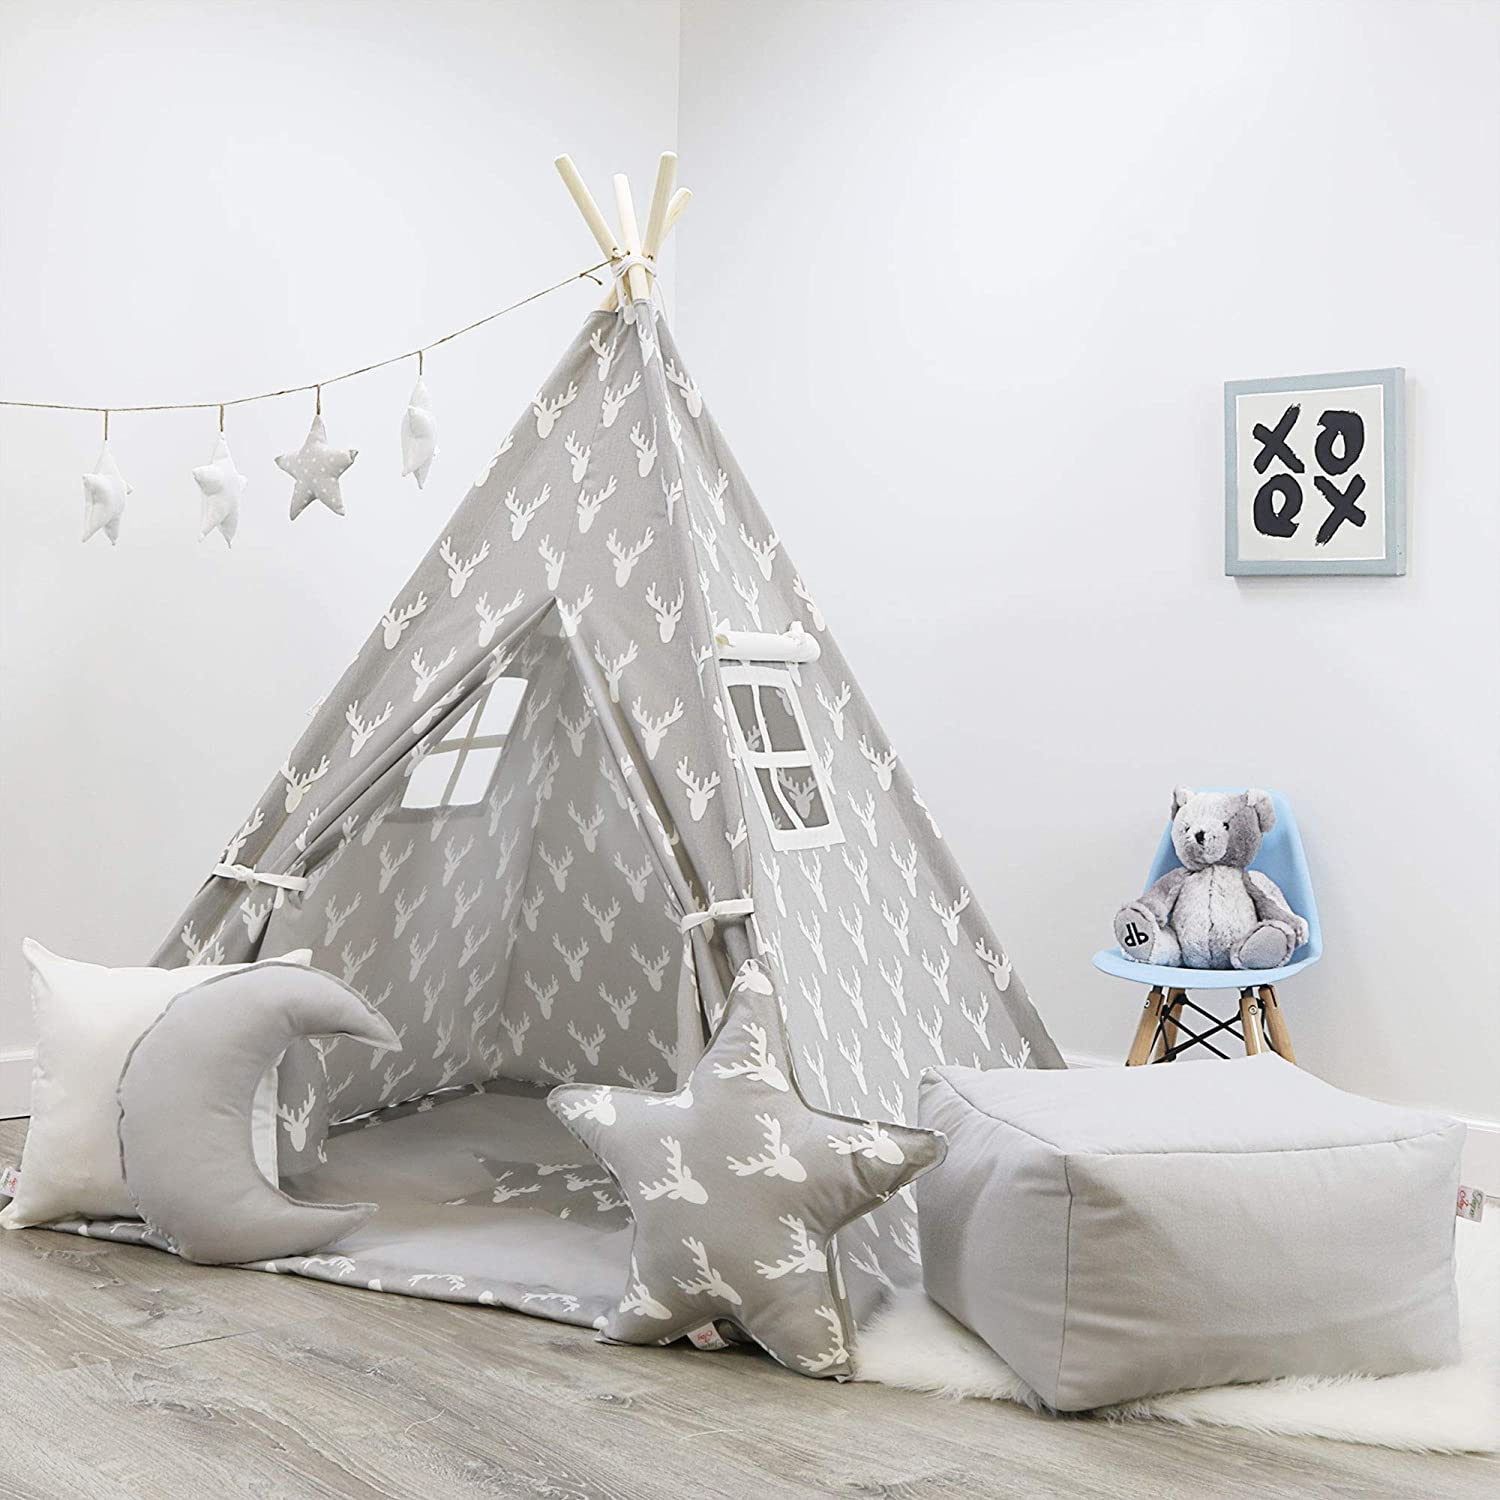 Amazon.com: Kids Teepee Tent Set, Gray W/ Reindeer Pattern Teepee Set,  Handcrafted Teepee for Kids, Comes with 2 Windows, a Mat, & 3 Pillows.:  Handmade